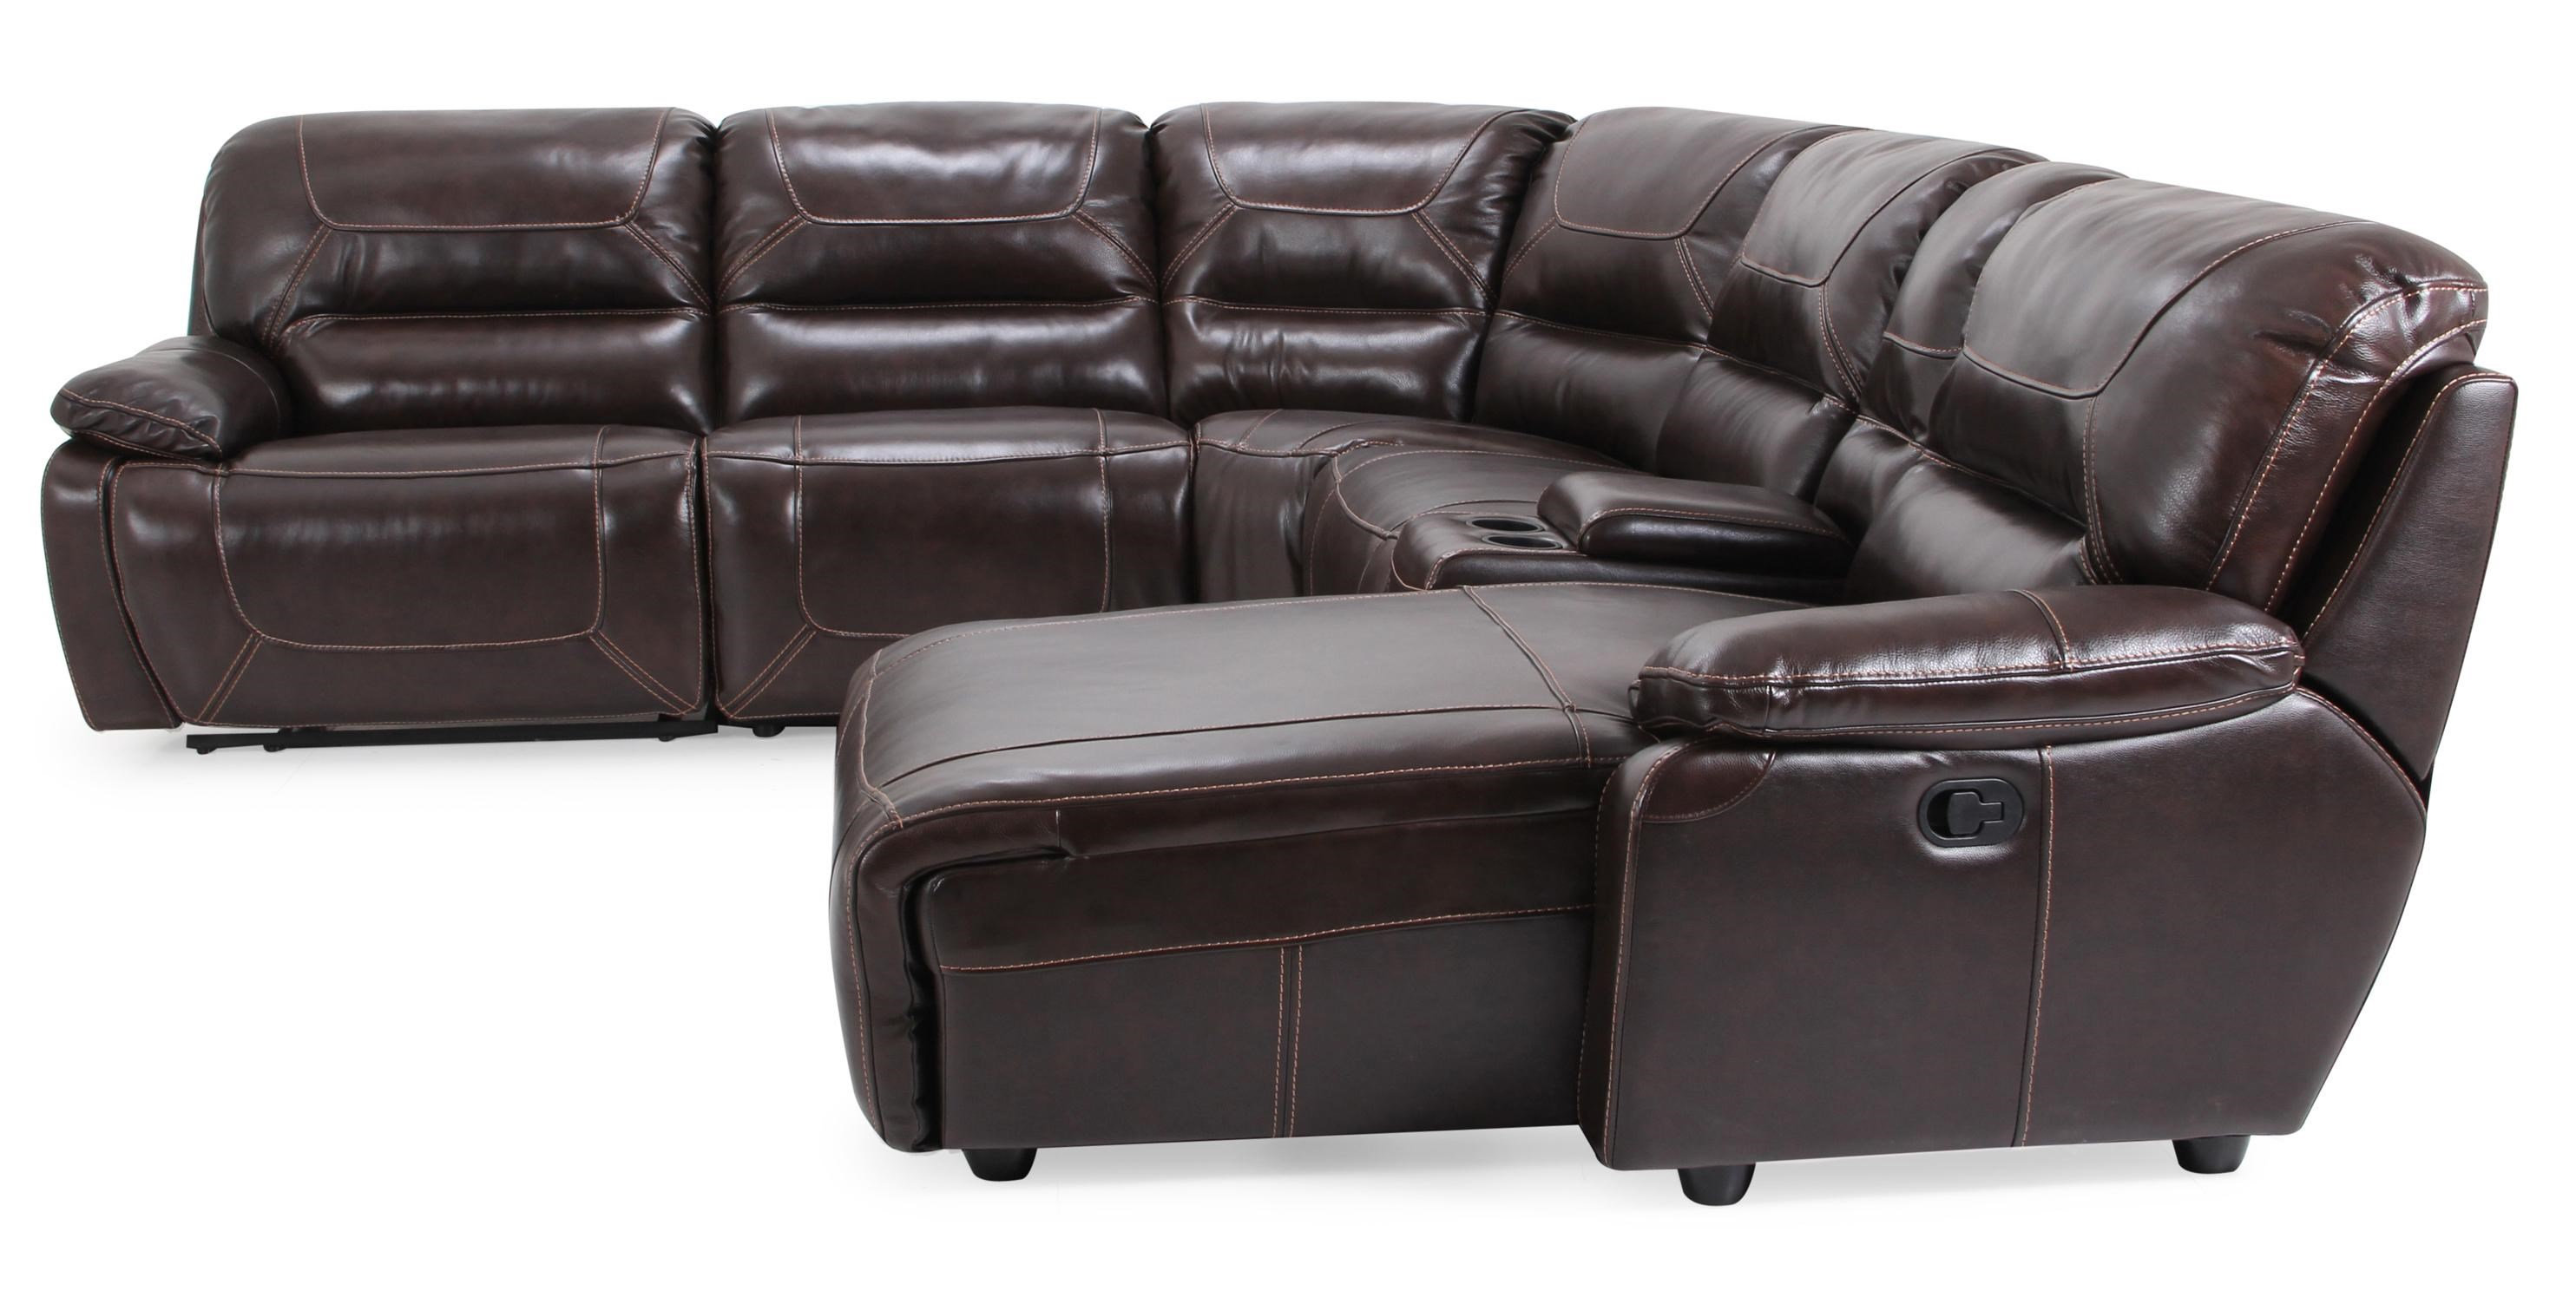 RXW9160M Casual 6-piece Reclining Sectional with RAF Chaise by Cheers Sofa  sc 1 st  Becku0027s Furniture : cheers sectional - Sectionals, Sofas & Couches